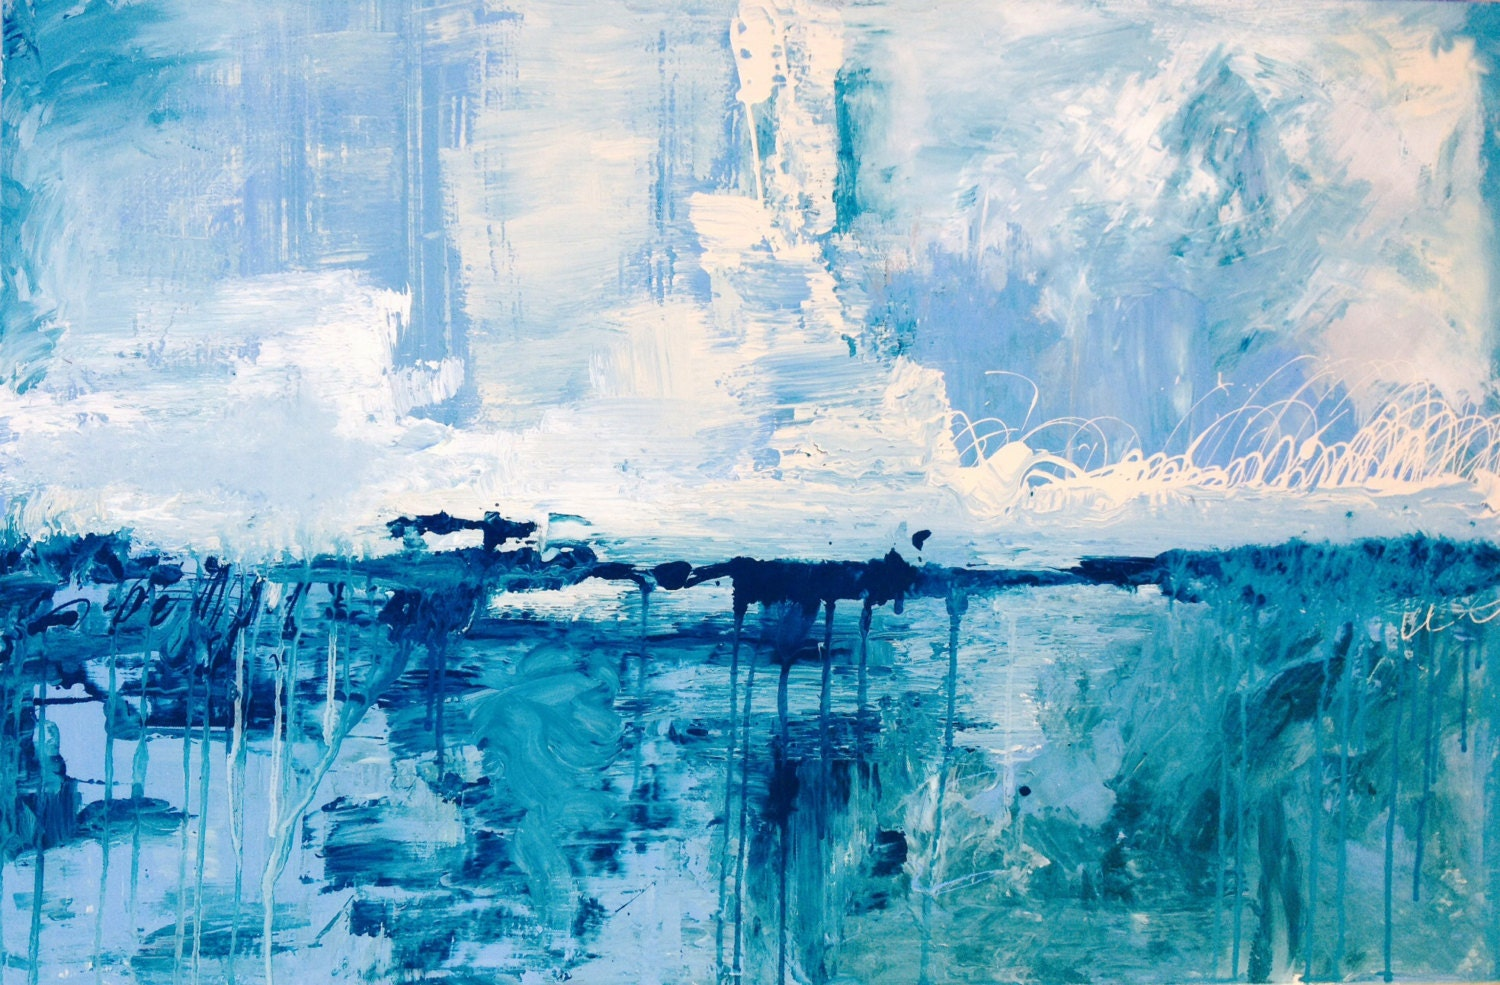 Teal Abstract Painting 24 X 36 Gallery Wrapped Acrylic On